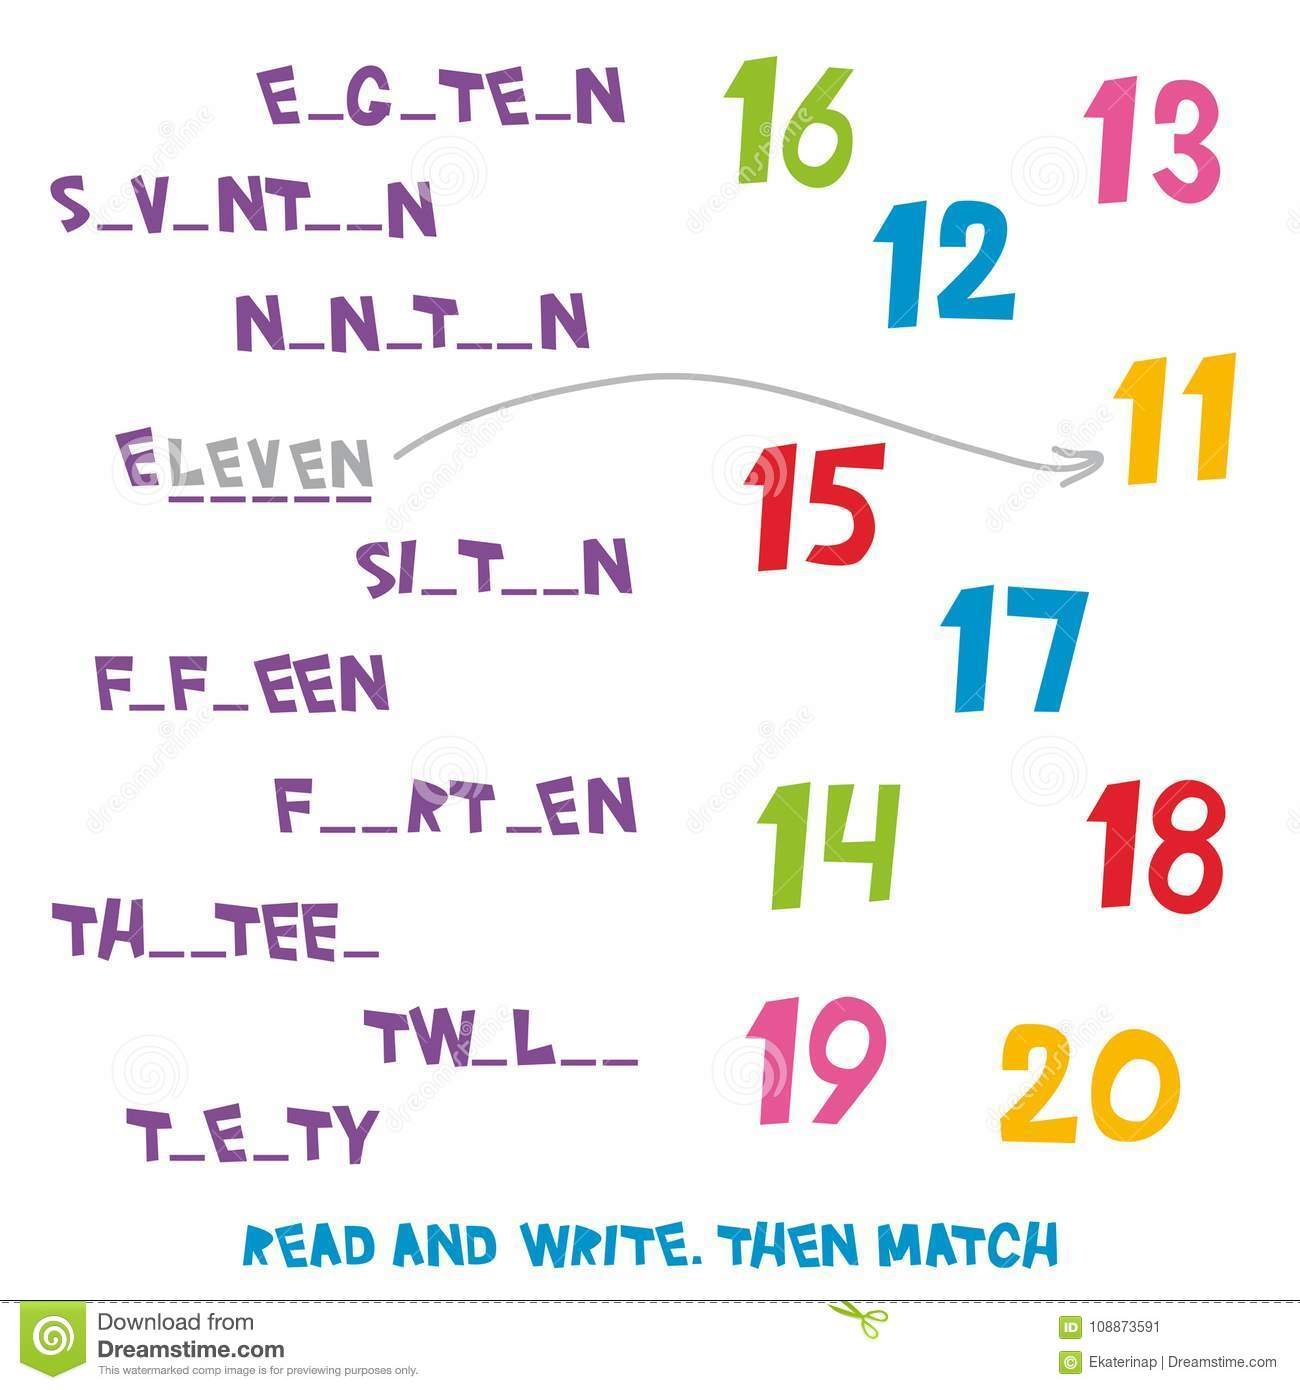 Read And Write Then Match The Numbers 11 To 20 Kids Words Learning Pertaining To Learning English For Kids Worksheets